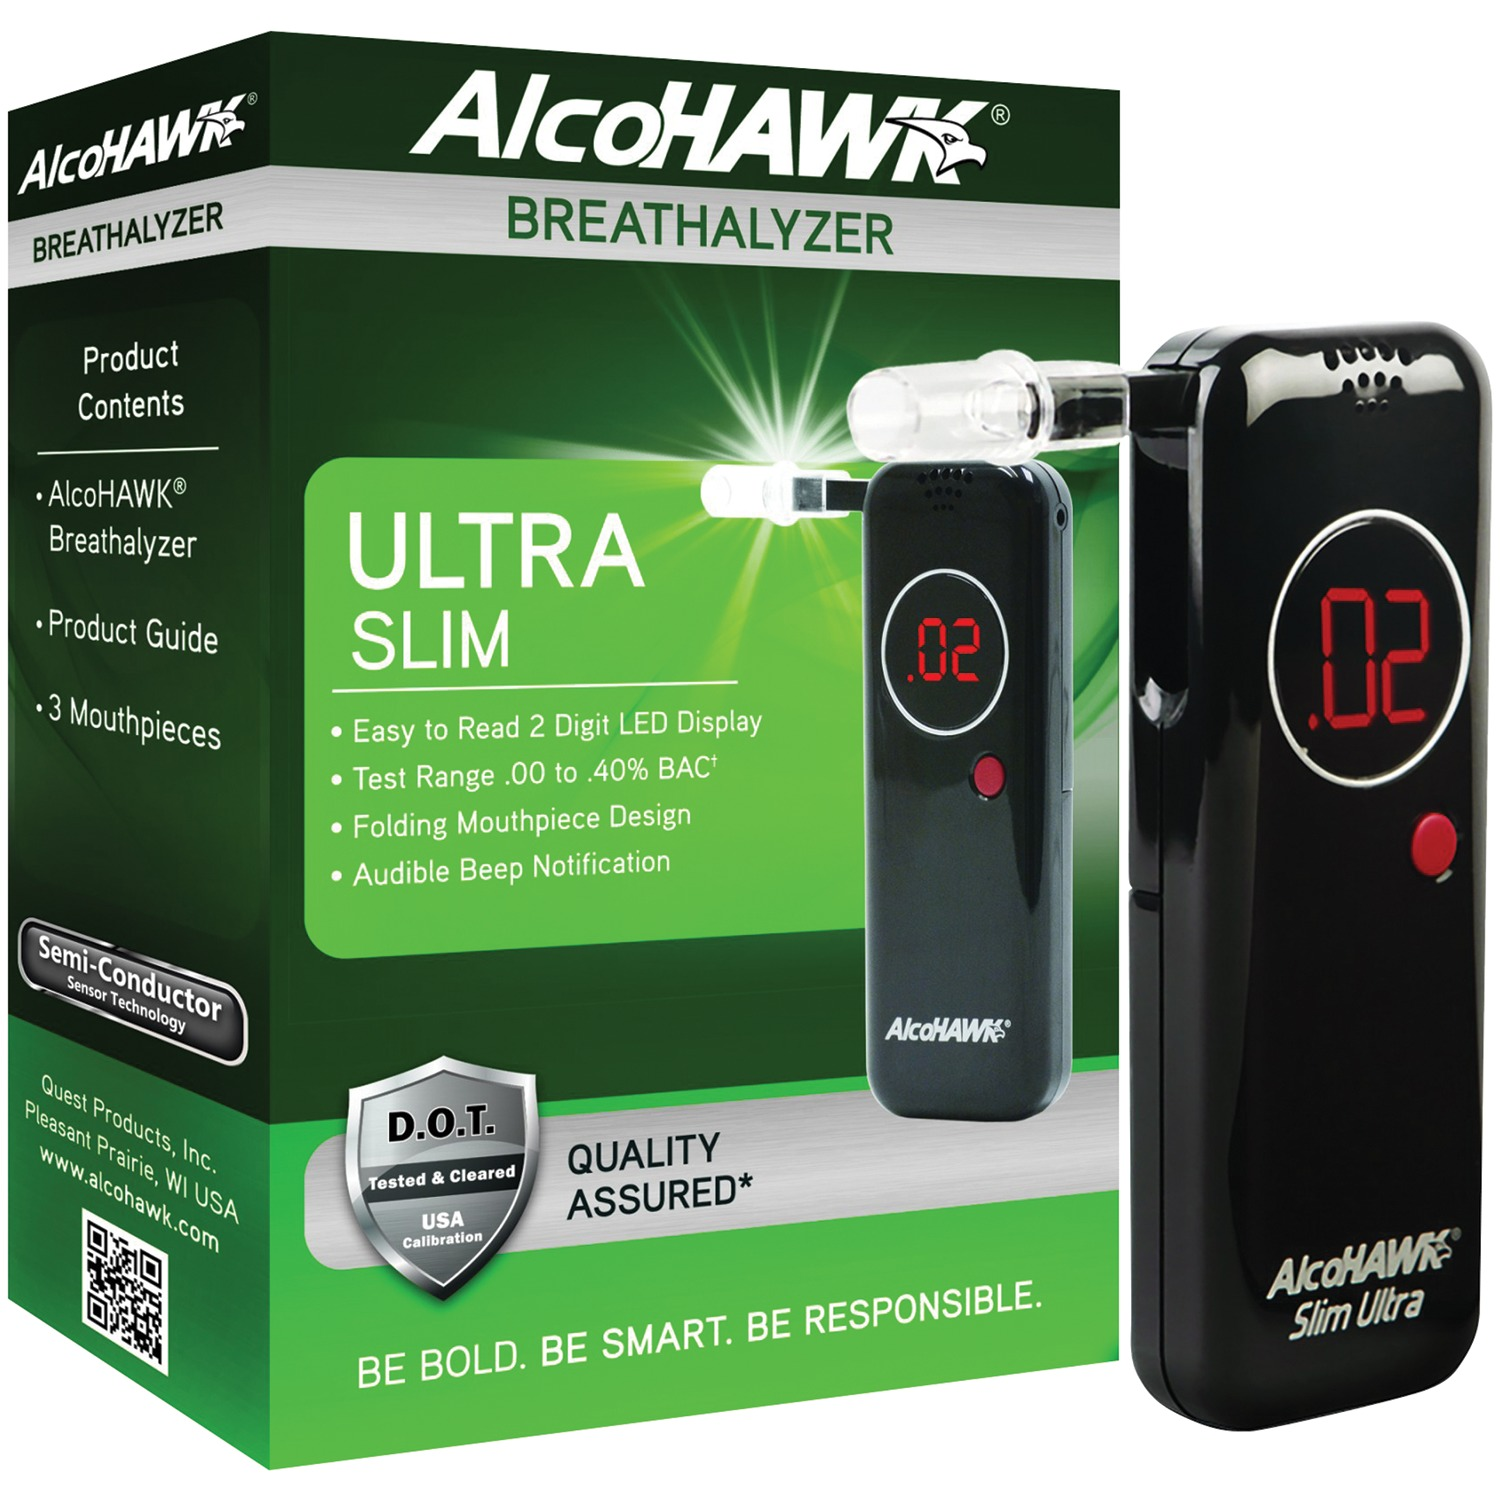 holiday office decorating ideas get smart workspaces.htm alcohawk ah2800s ultra slim breathalyzer walmart com walmart com  ah2800s ultra slim breathalyzer